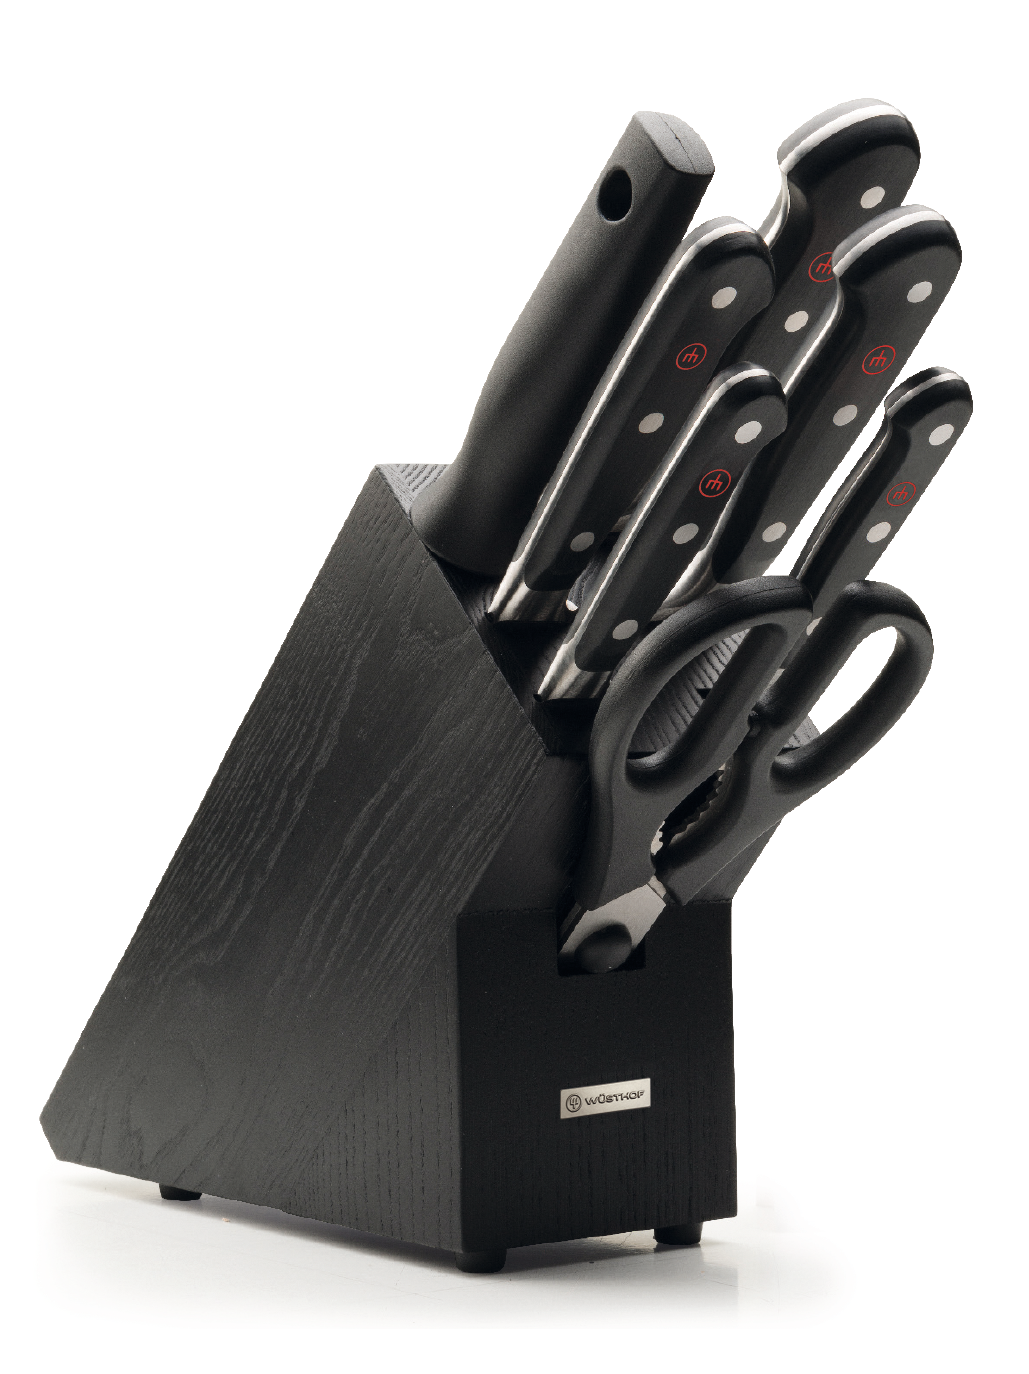 Eight Piece Knife Block Set with Black Knife Block - 9837